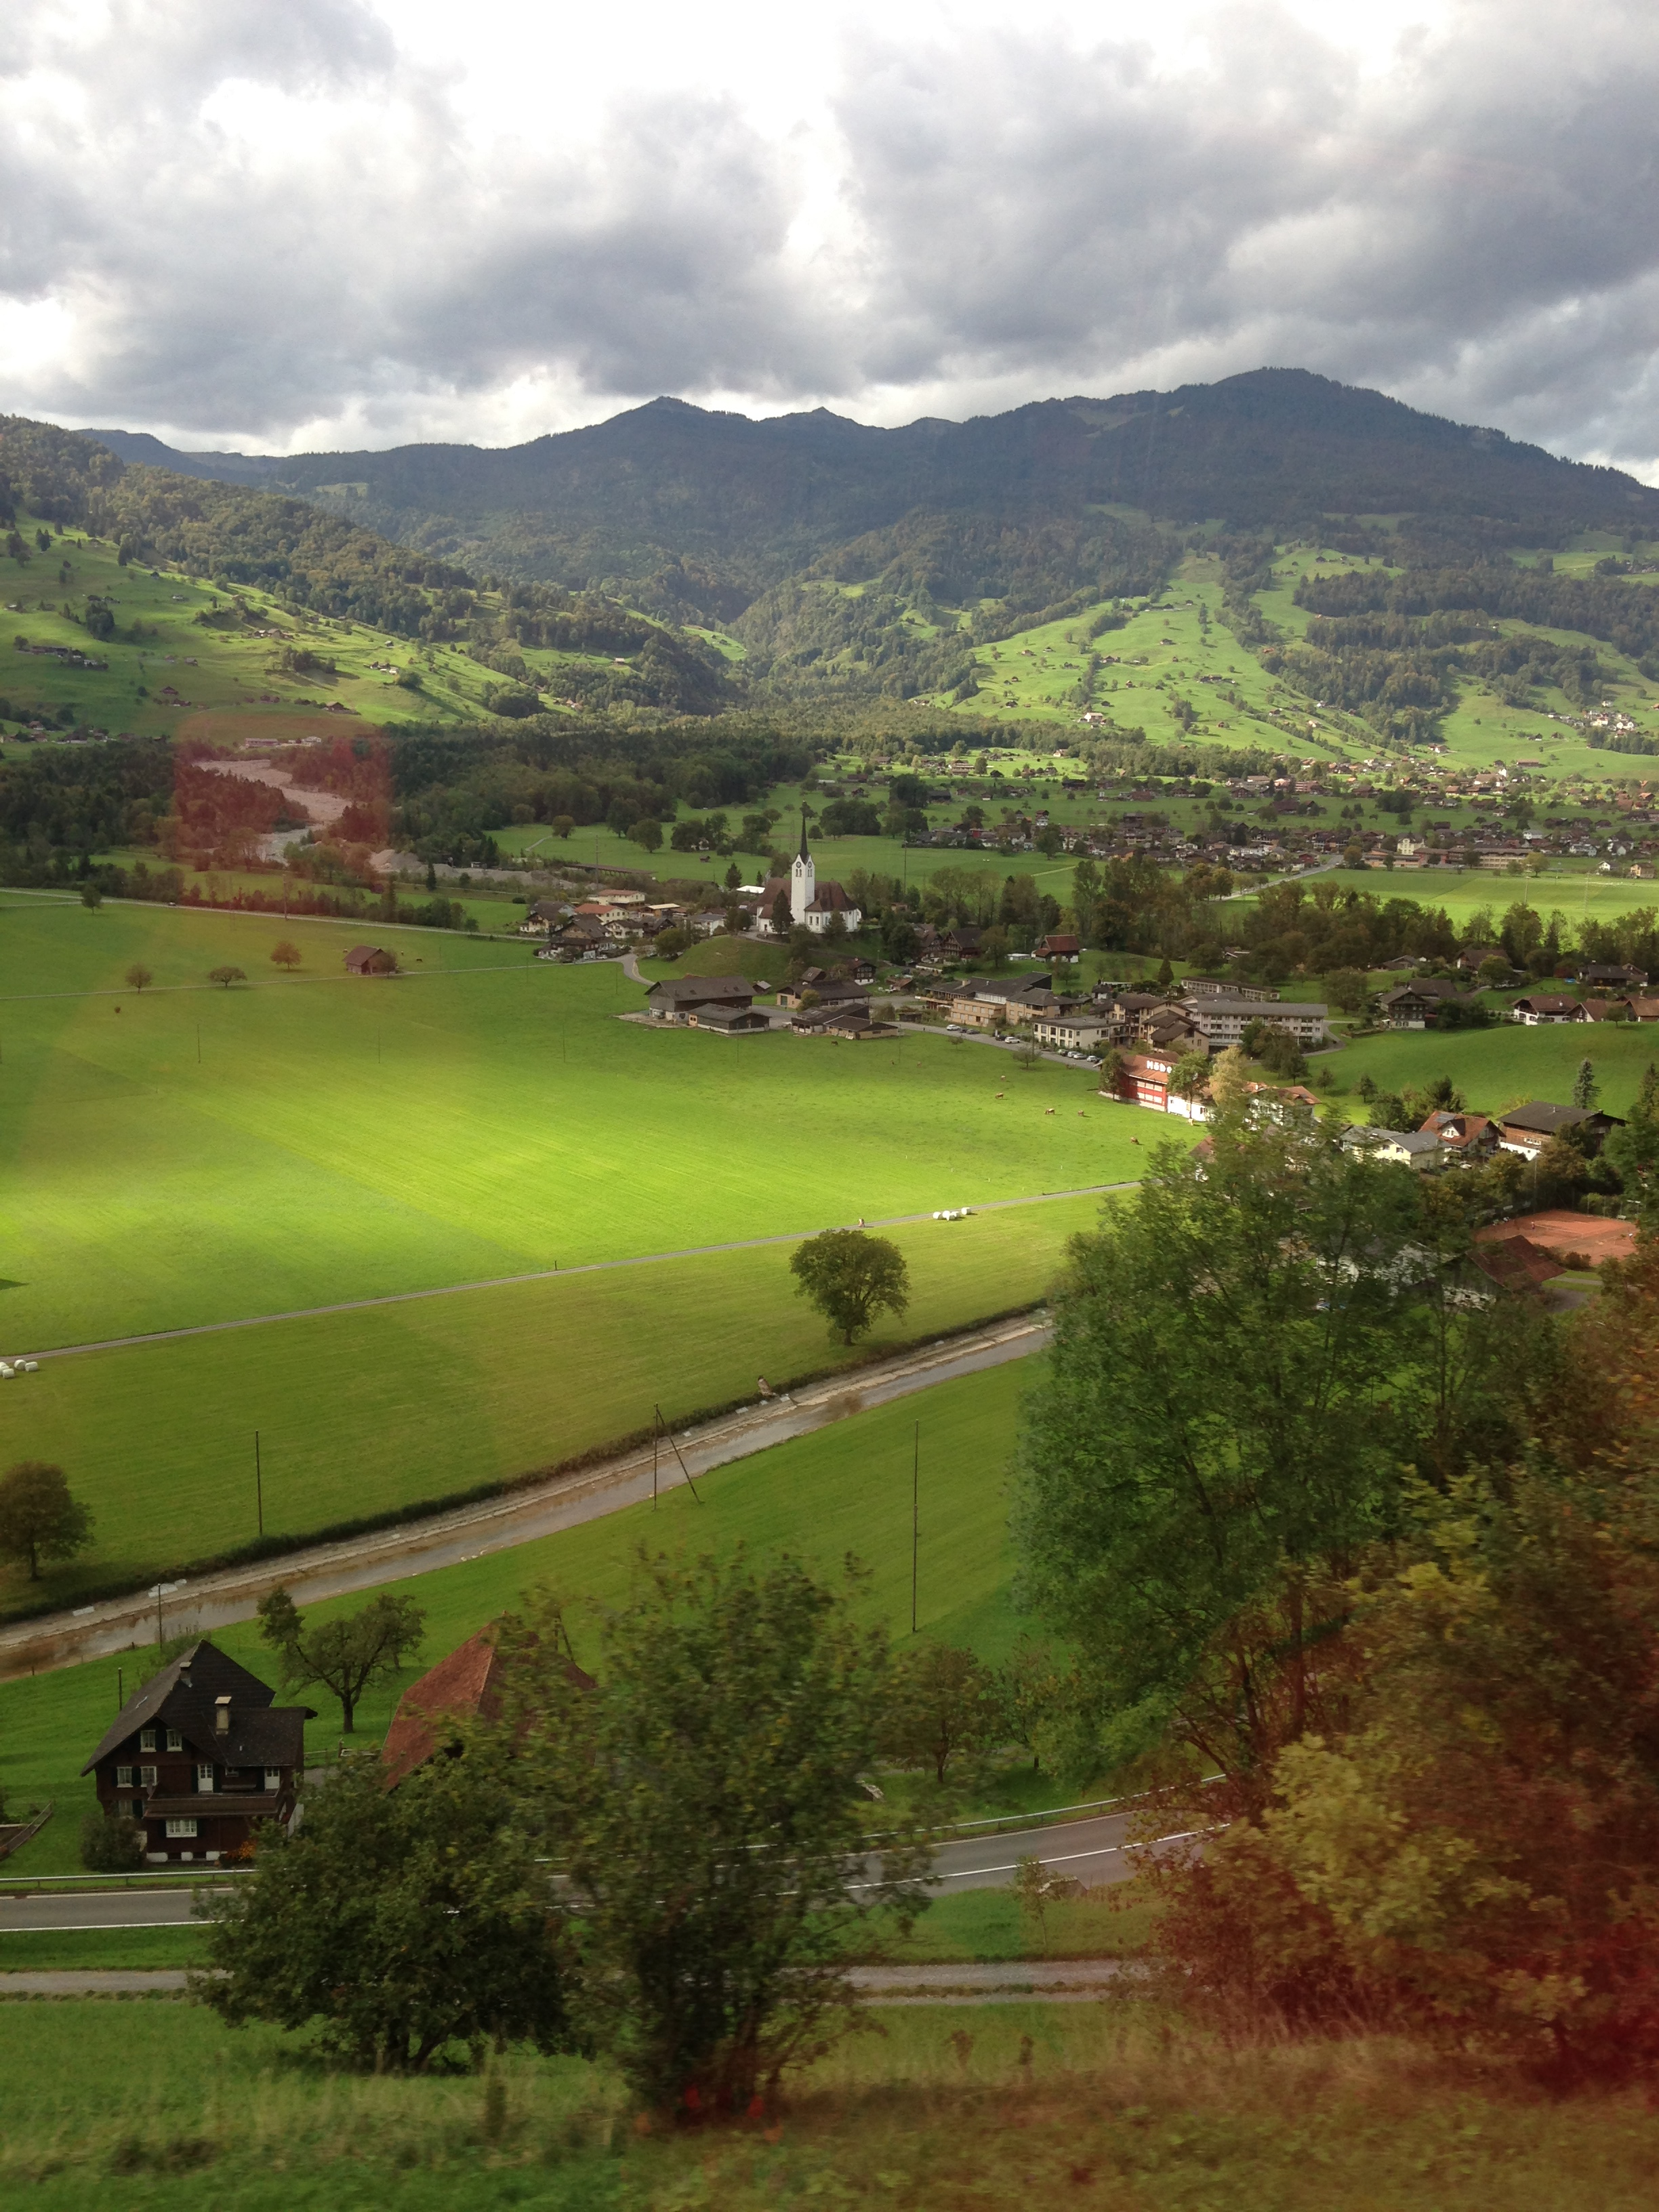 View from the train between Austria and Switzerland